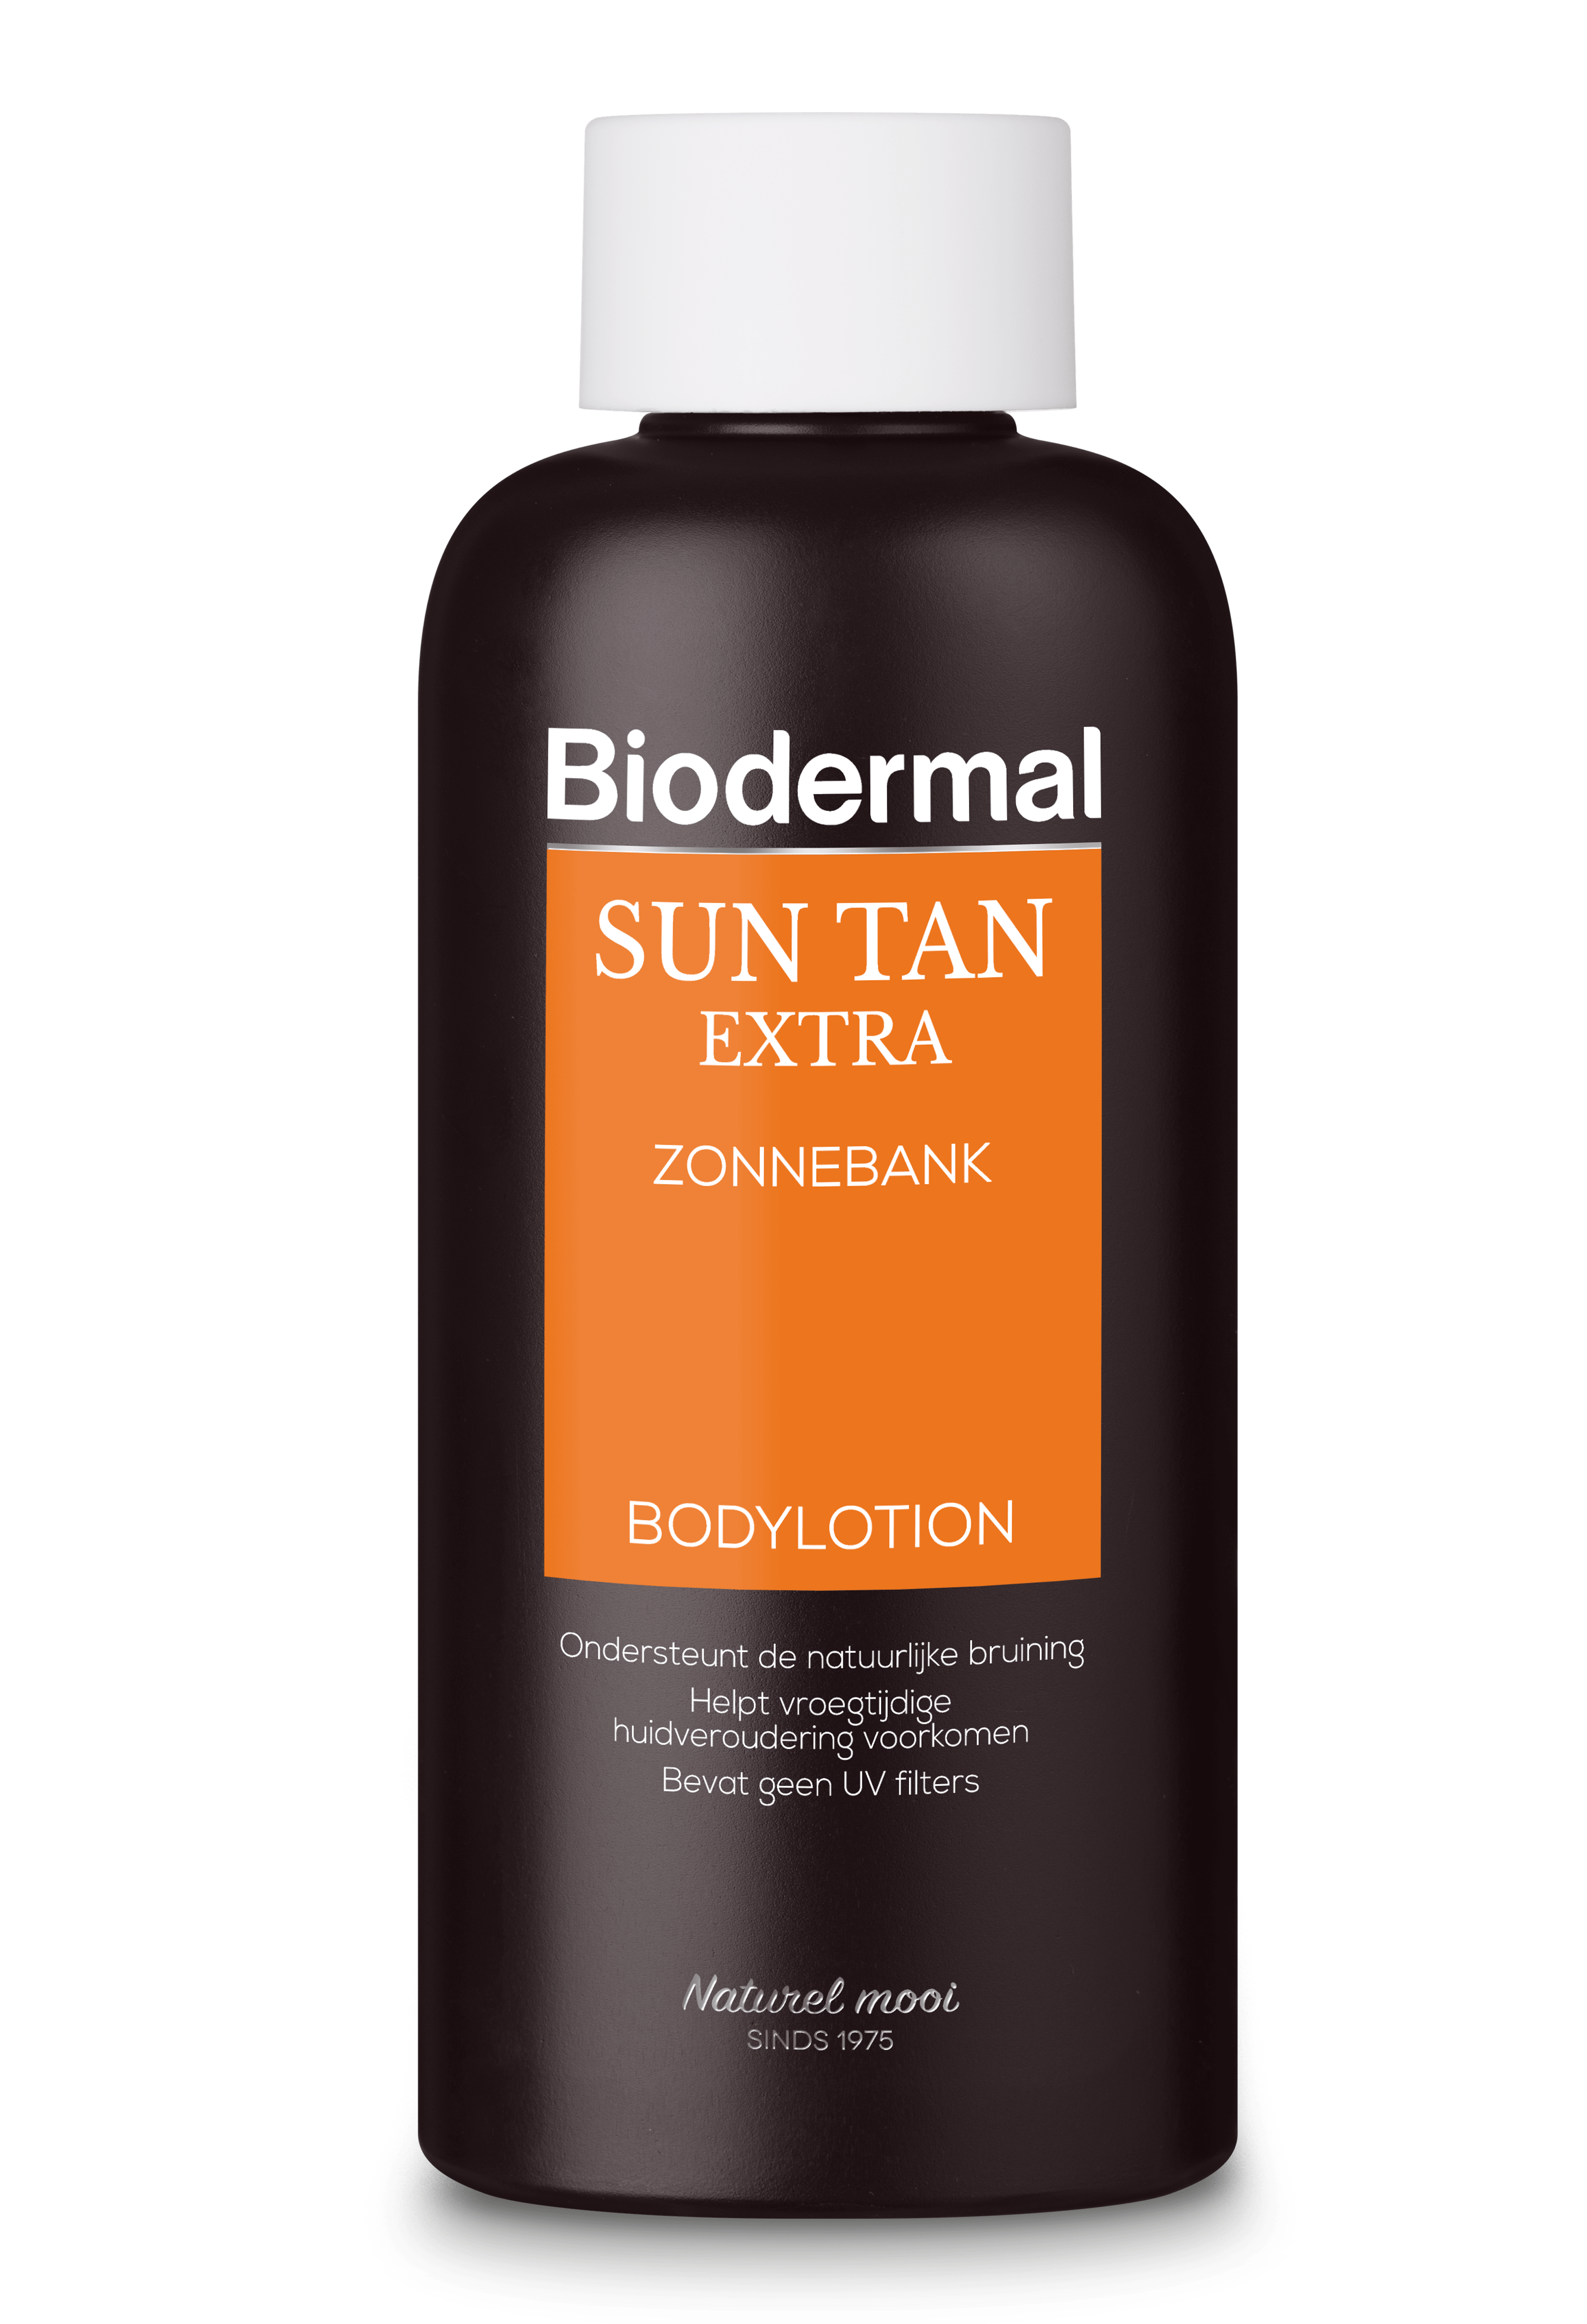 Product Sun Tan Extra Bodylotion Biodermal